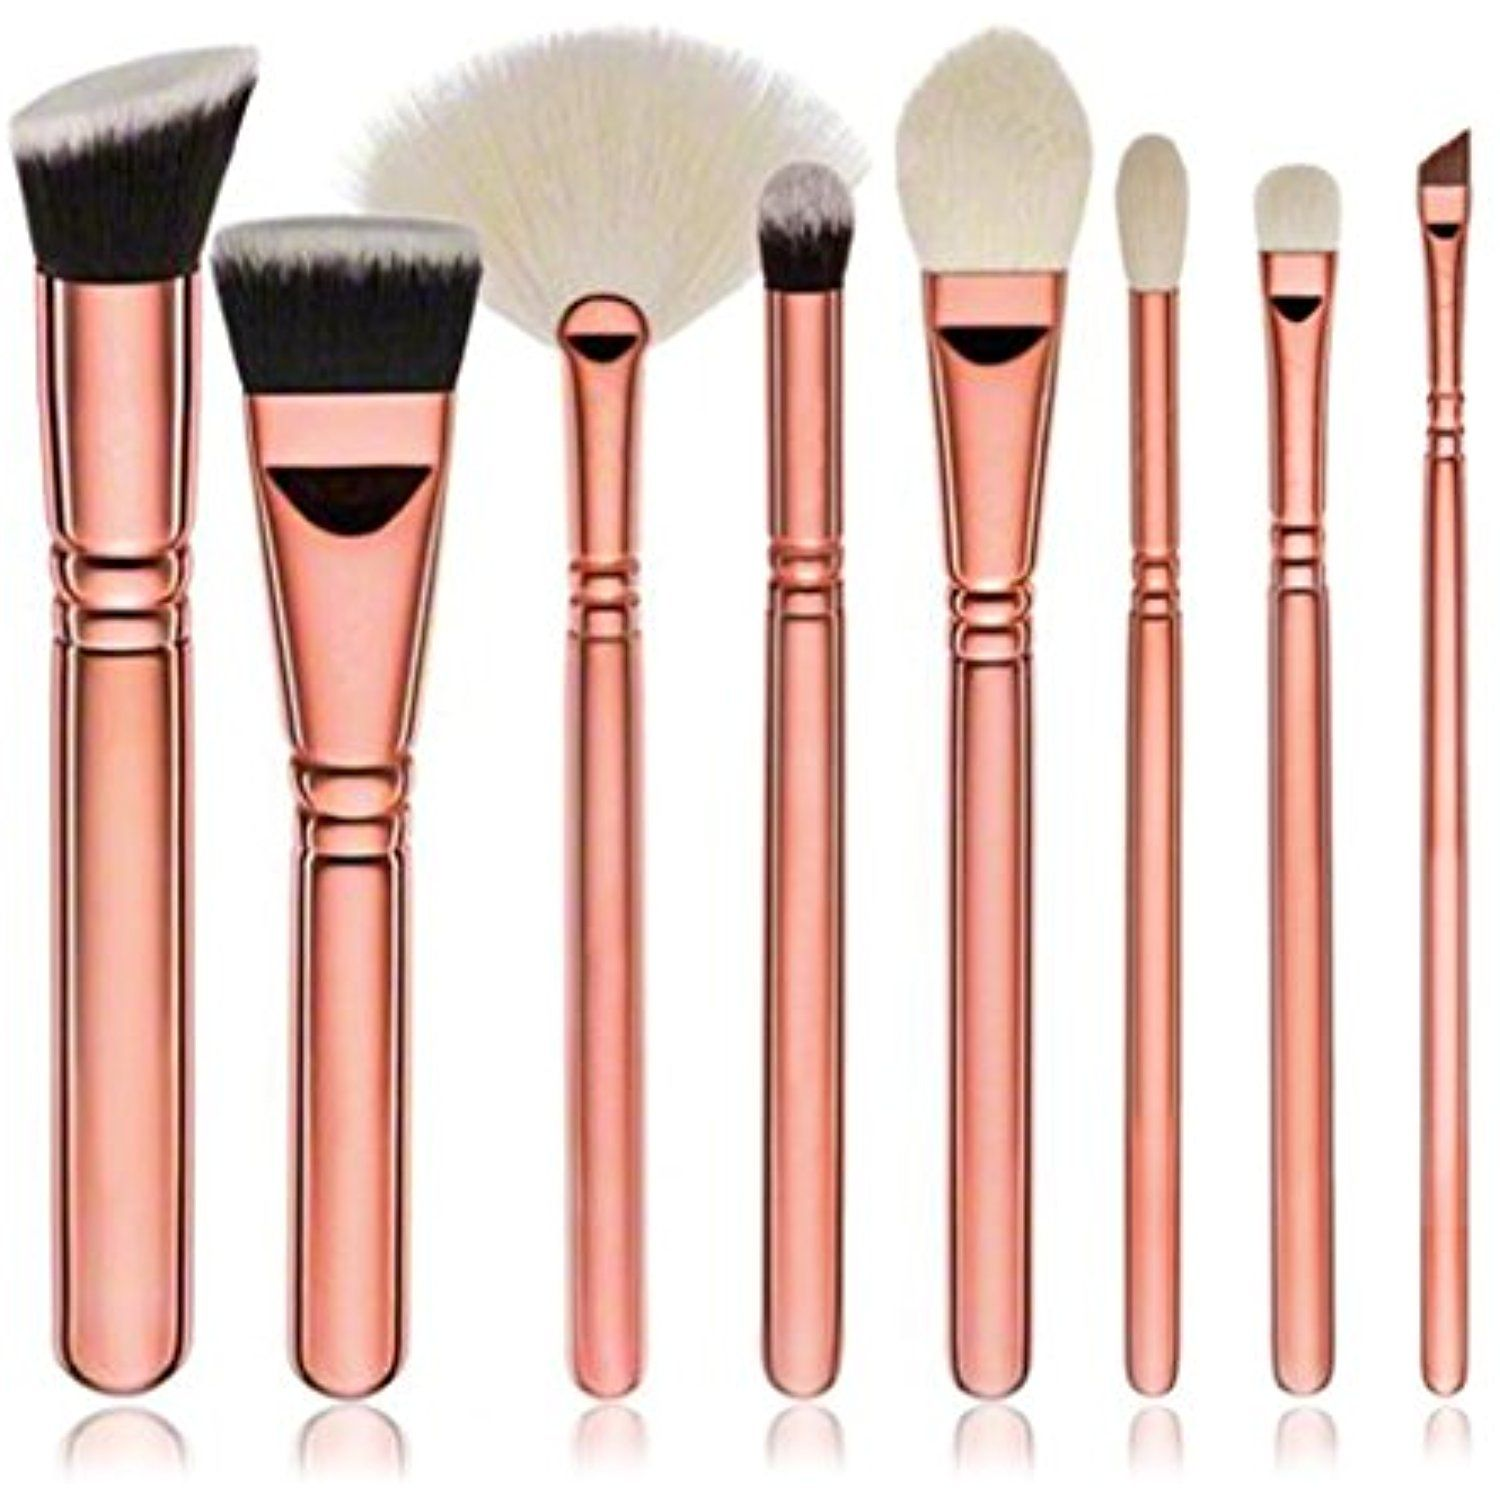 Yoyorule 8pcs Cosmetic Makeup Brush Blusher Eye Shadow